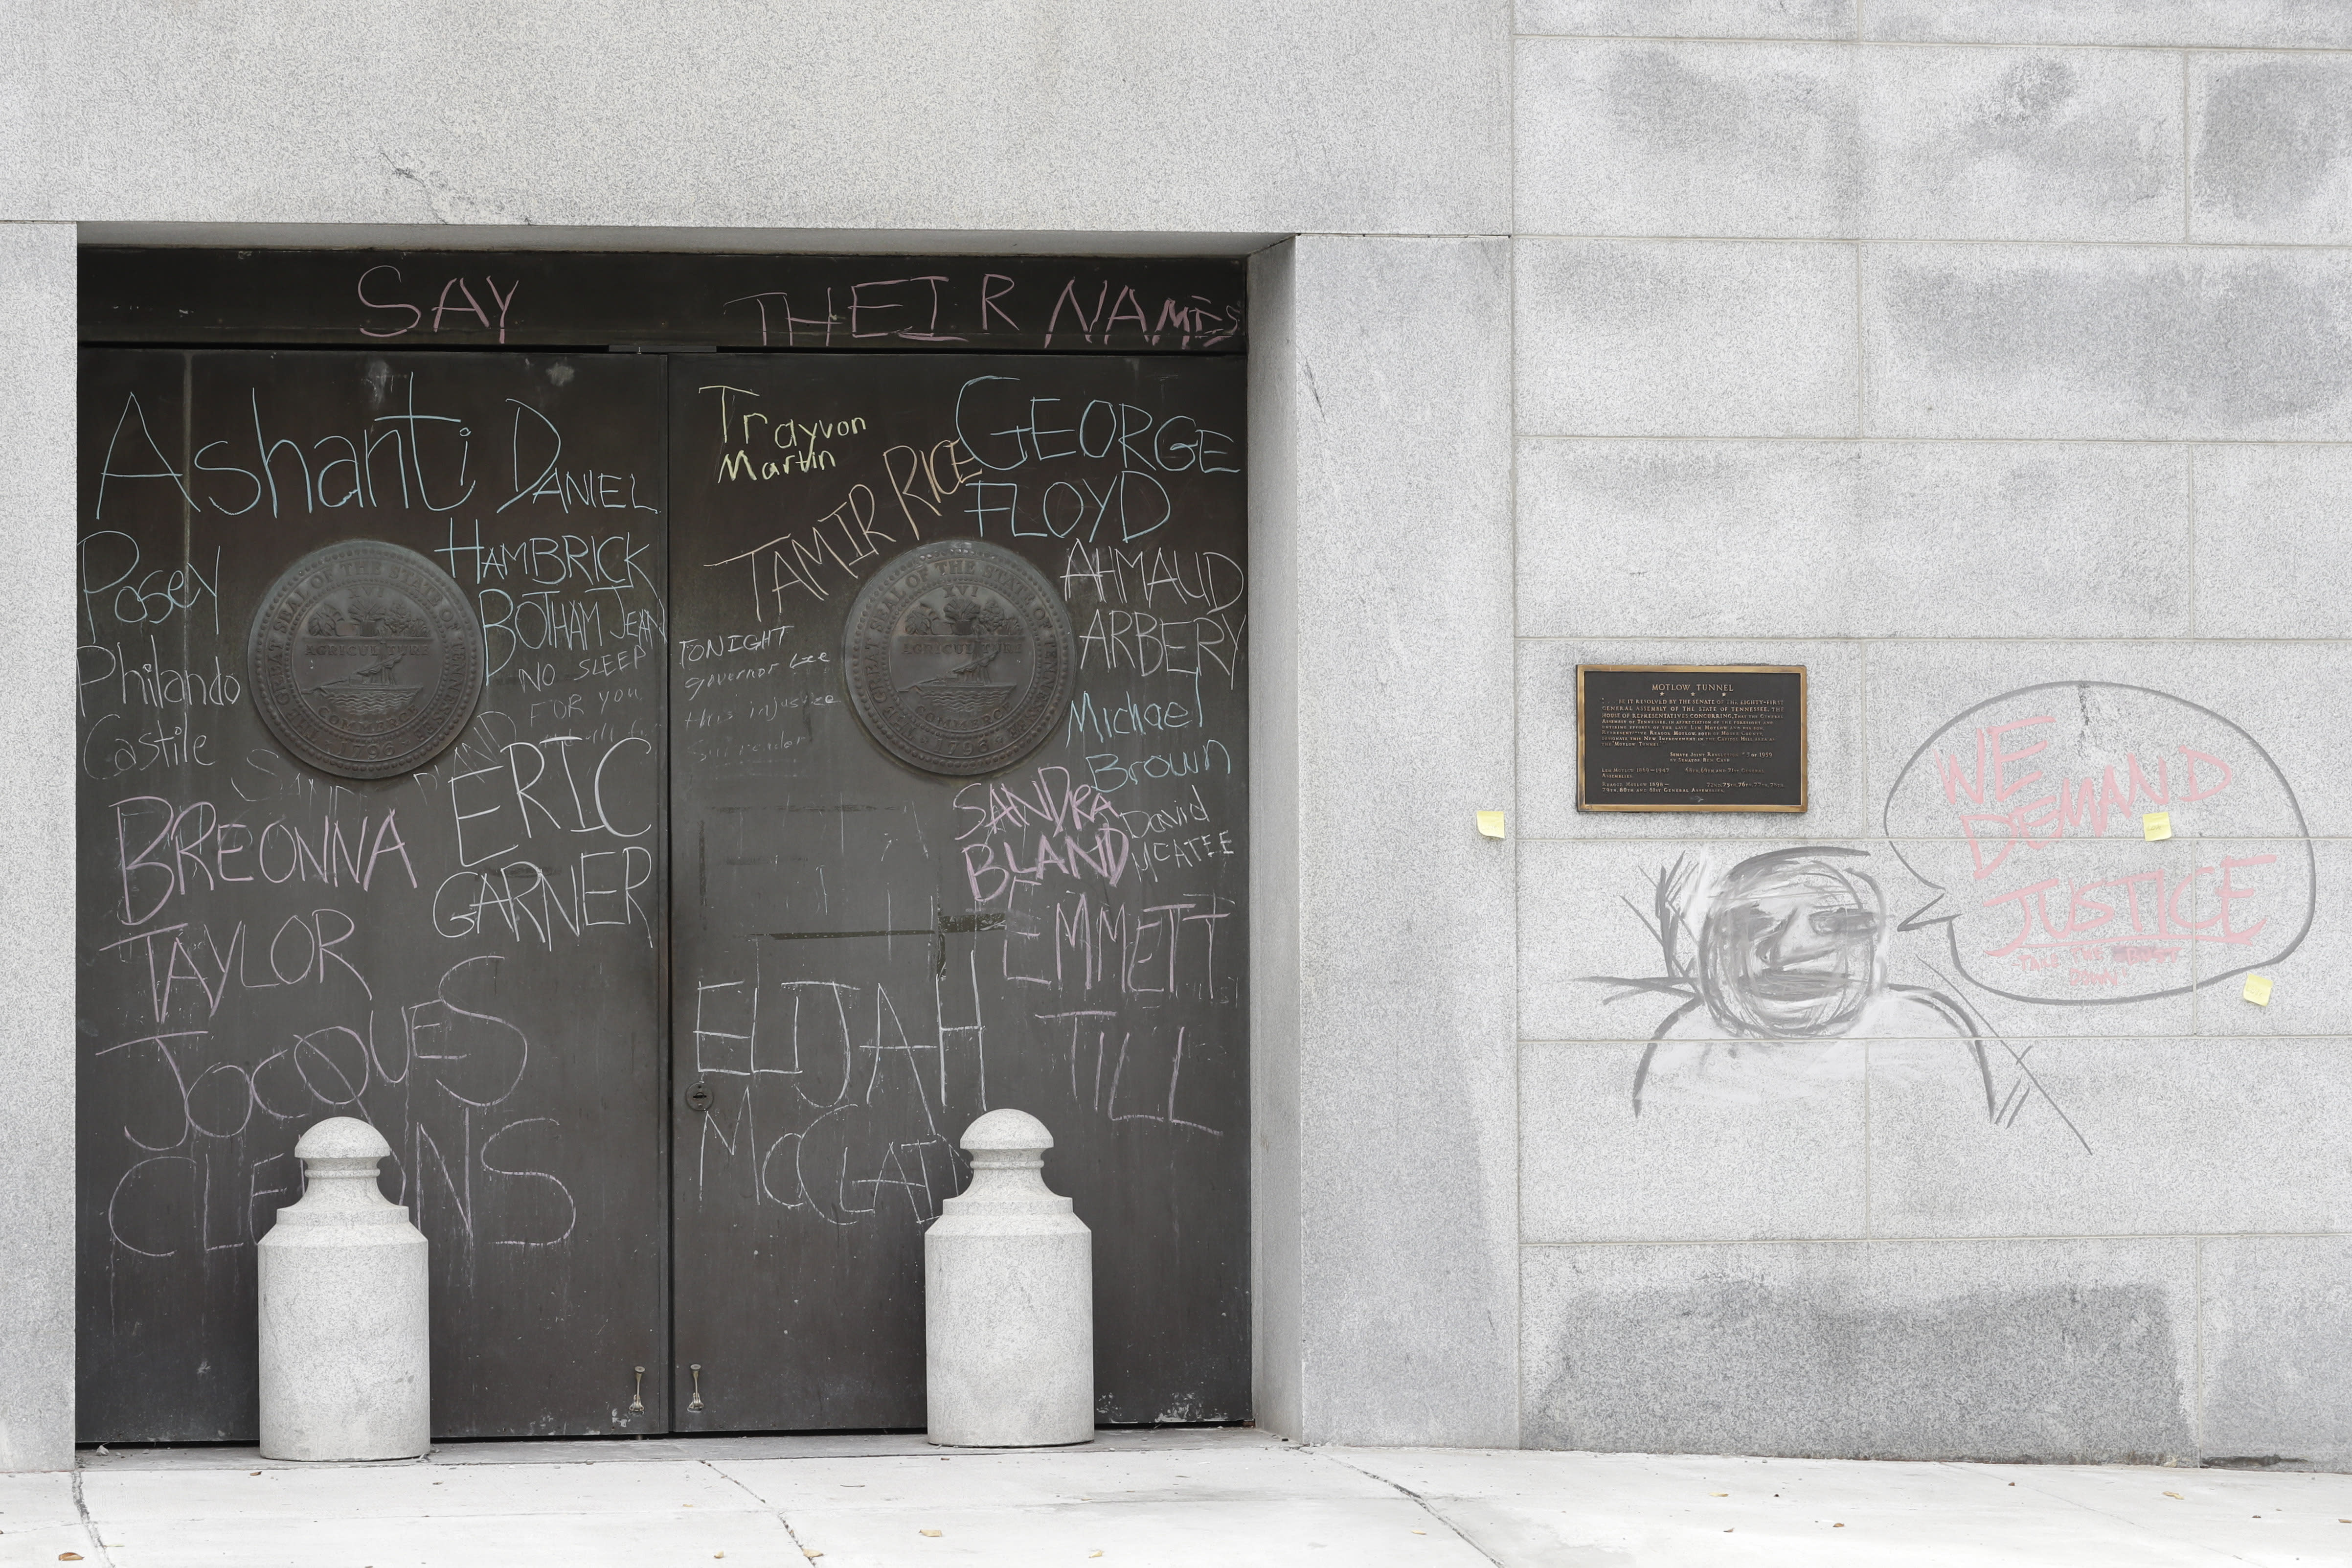 """Graffiti from demonstrators protesting social injustice is left on doors and a wall at the state capitol Wednesday, July 1, 2020, in Nashville, Tenn. Tennessee's newest law, a wide range of crimes commonly associated with protests will see a big bump in penalties and fines, but the most contentious element focuses on escalated penalties for """"illegal camping"""" on state property from a misdemeanor to a felony, punishable by up to six years in prison. (AP Photo/Mark Humphrey)"""